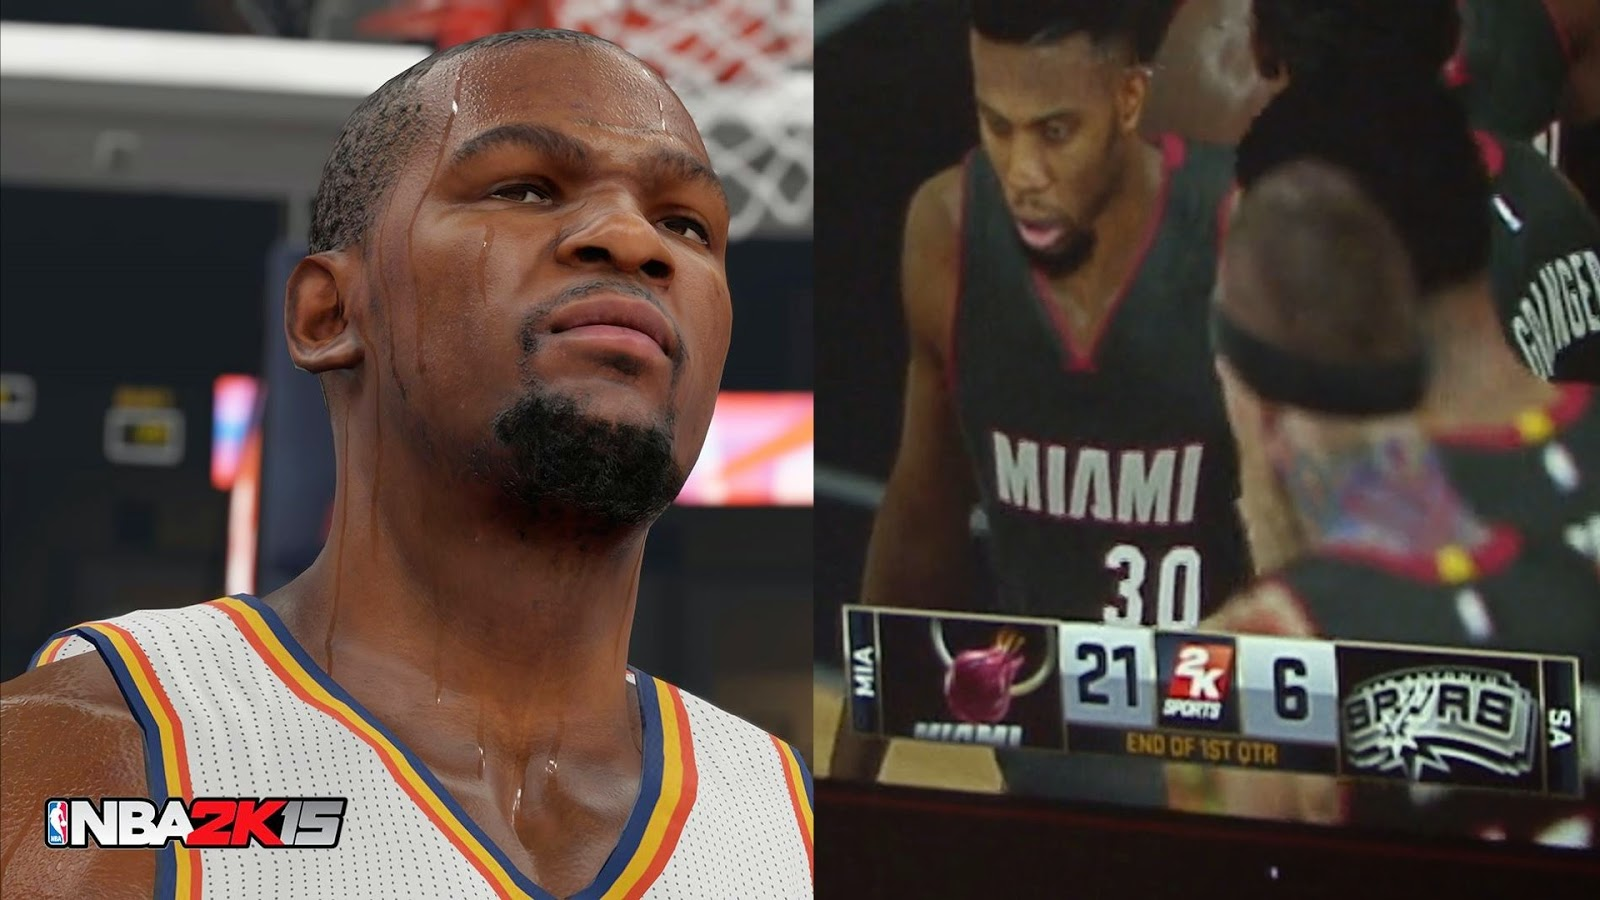 NBA2k15 Screenplay